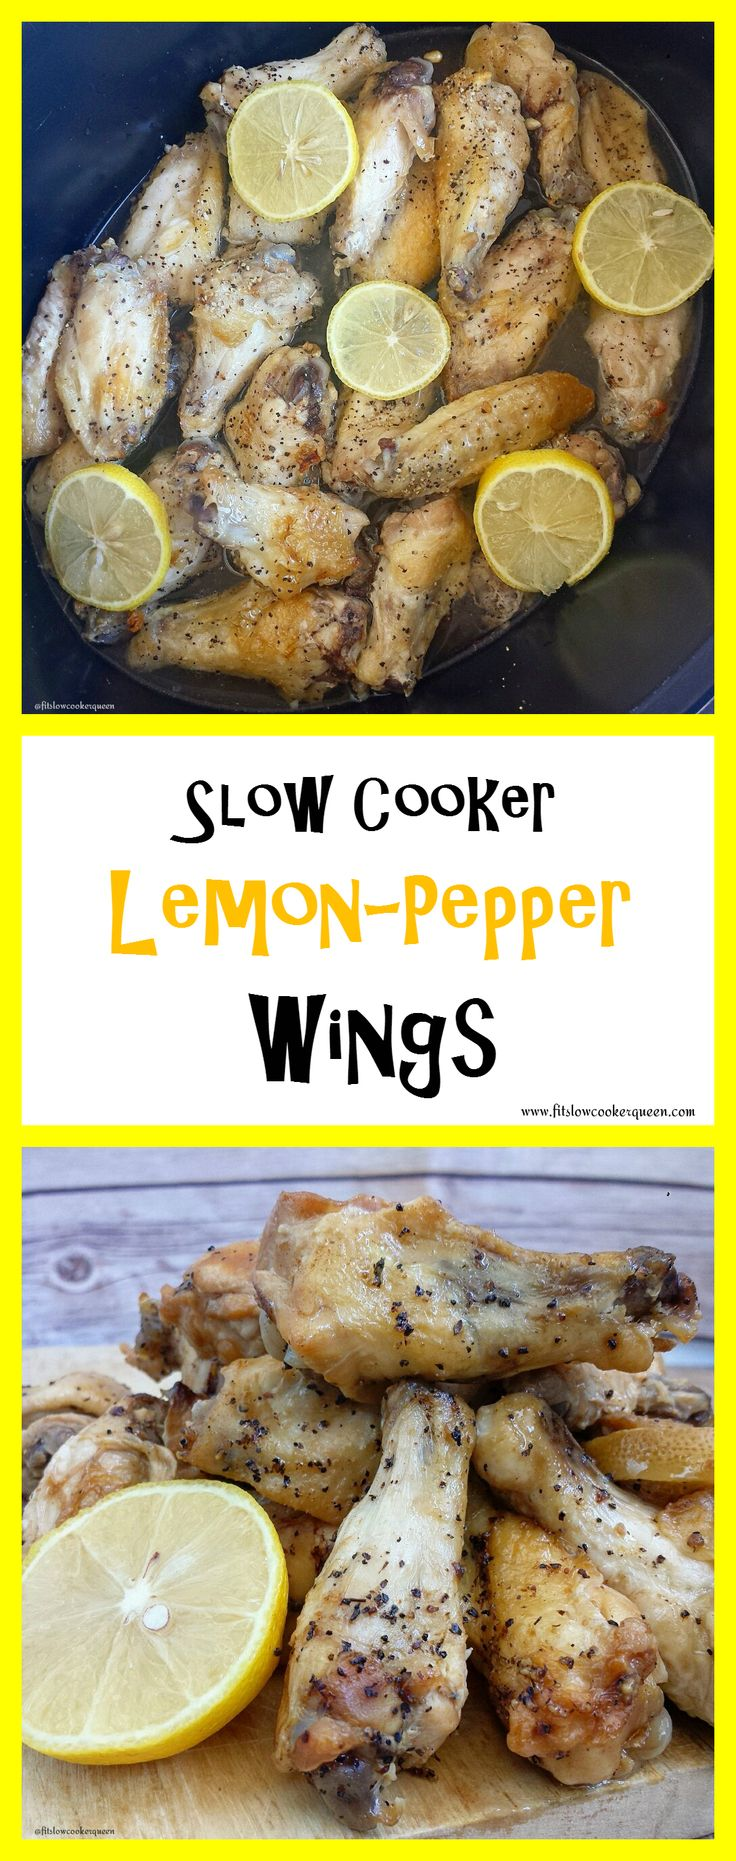 Healthy crockpot / slow cooker recipe whole30 paleo - A light, homemade lemon-pepper sauce slow cooks with wings for this healthy game day appetizer. This recipe is whole 30 compliant, paleo and a crowd pleaser.